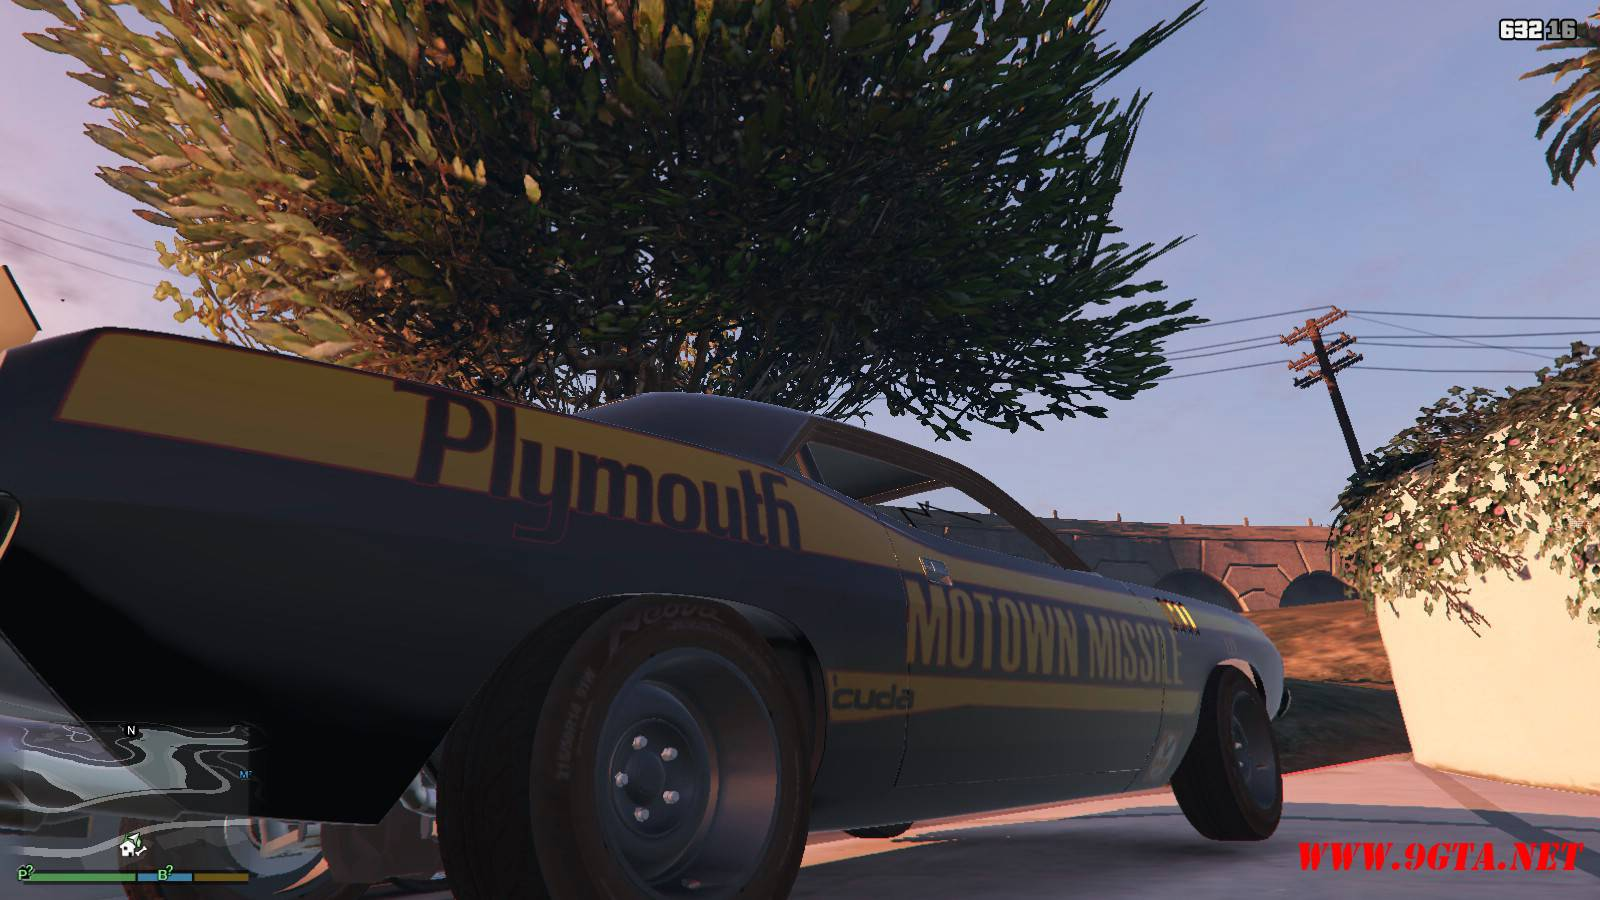 Plymouth Kuda Beck Customs Mod For GTA5 (7)